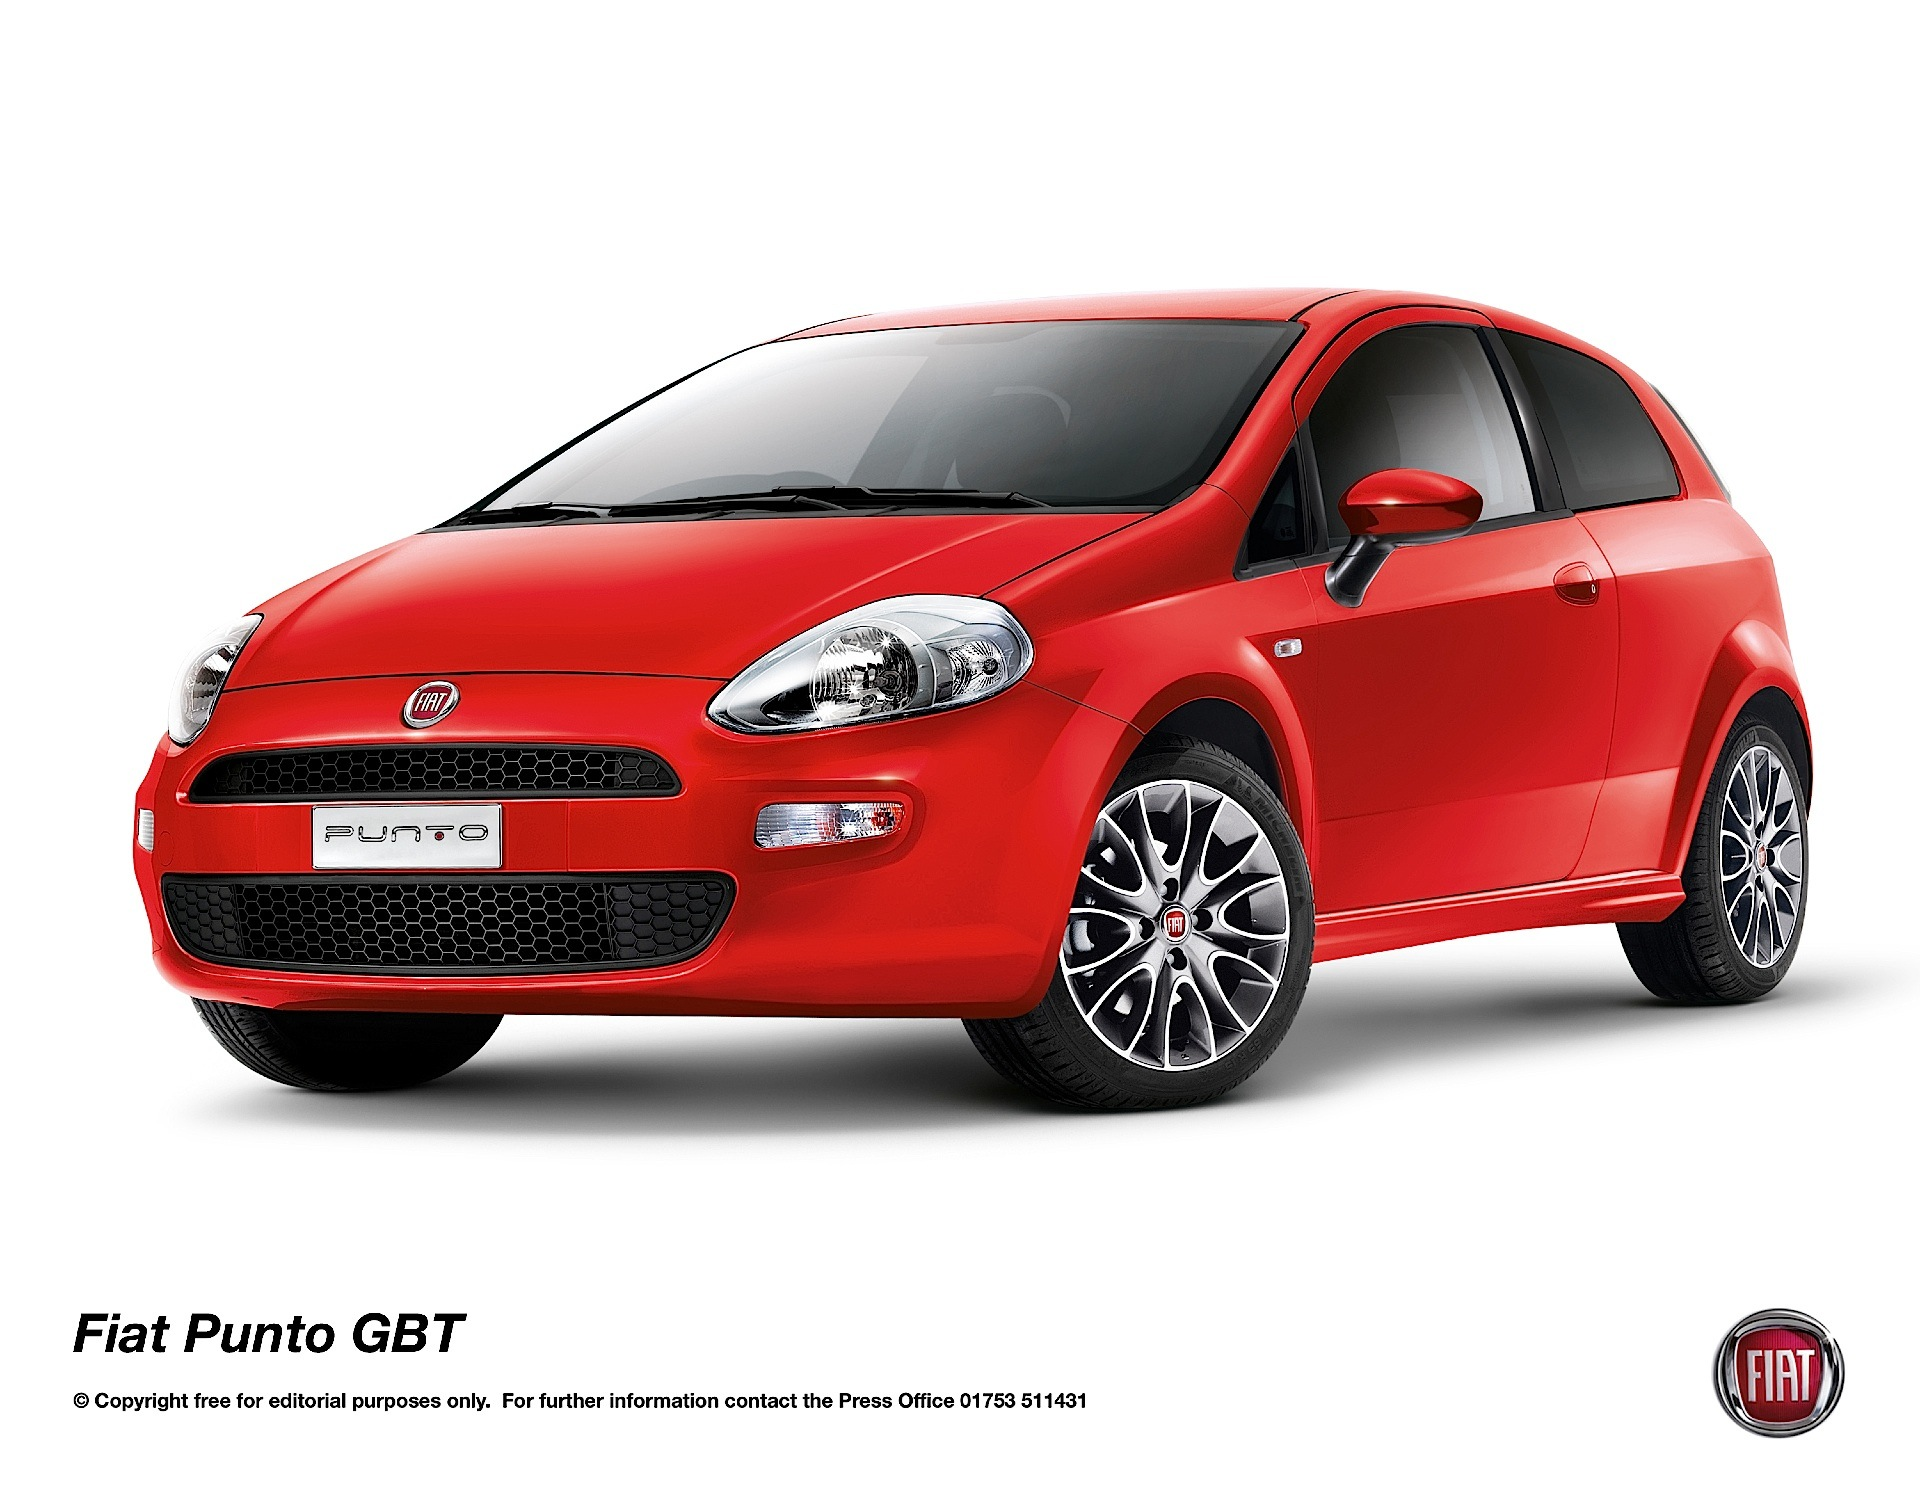 fiat punto 3 doors specs 2012 2013 2014 2015 2016 2017 2018 autoevolution. Black Bedroom Furniture Sets. Home Design Ideas